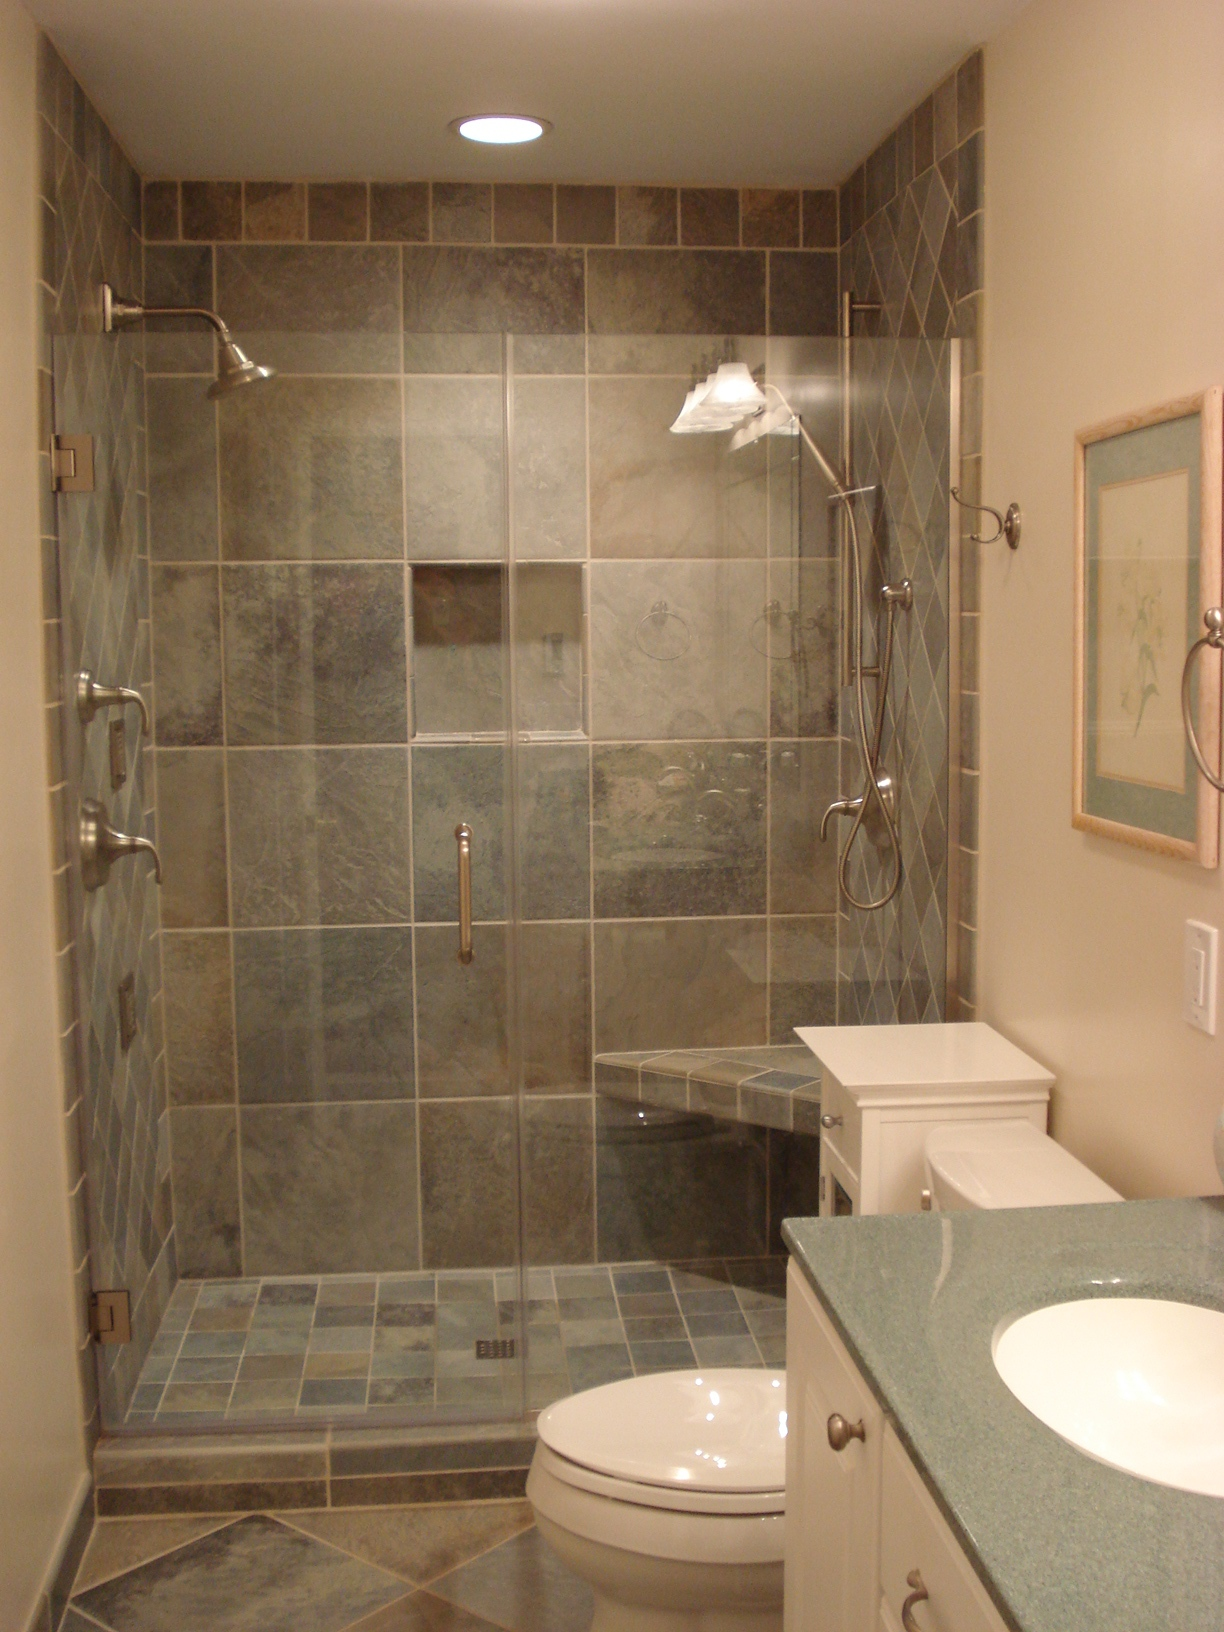 Lifetime design build inc completed projects for Bathroom design build